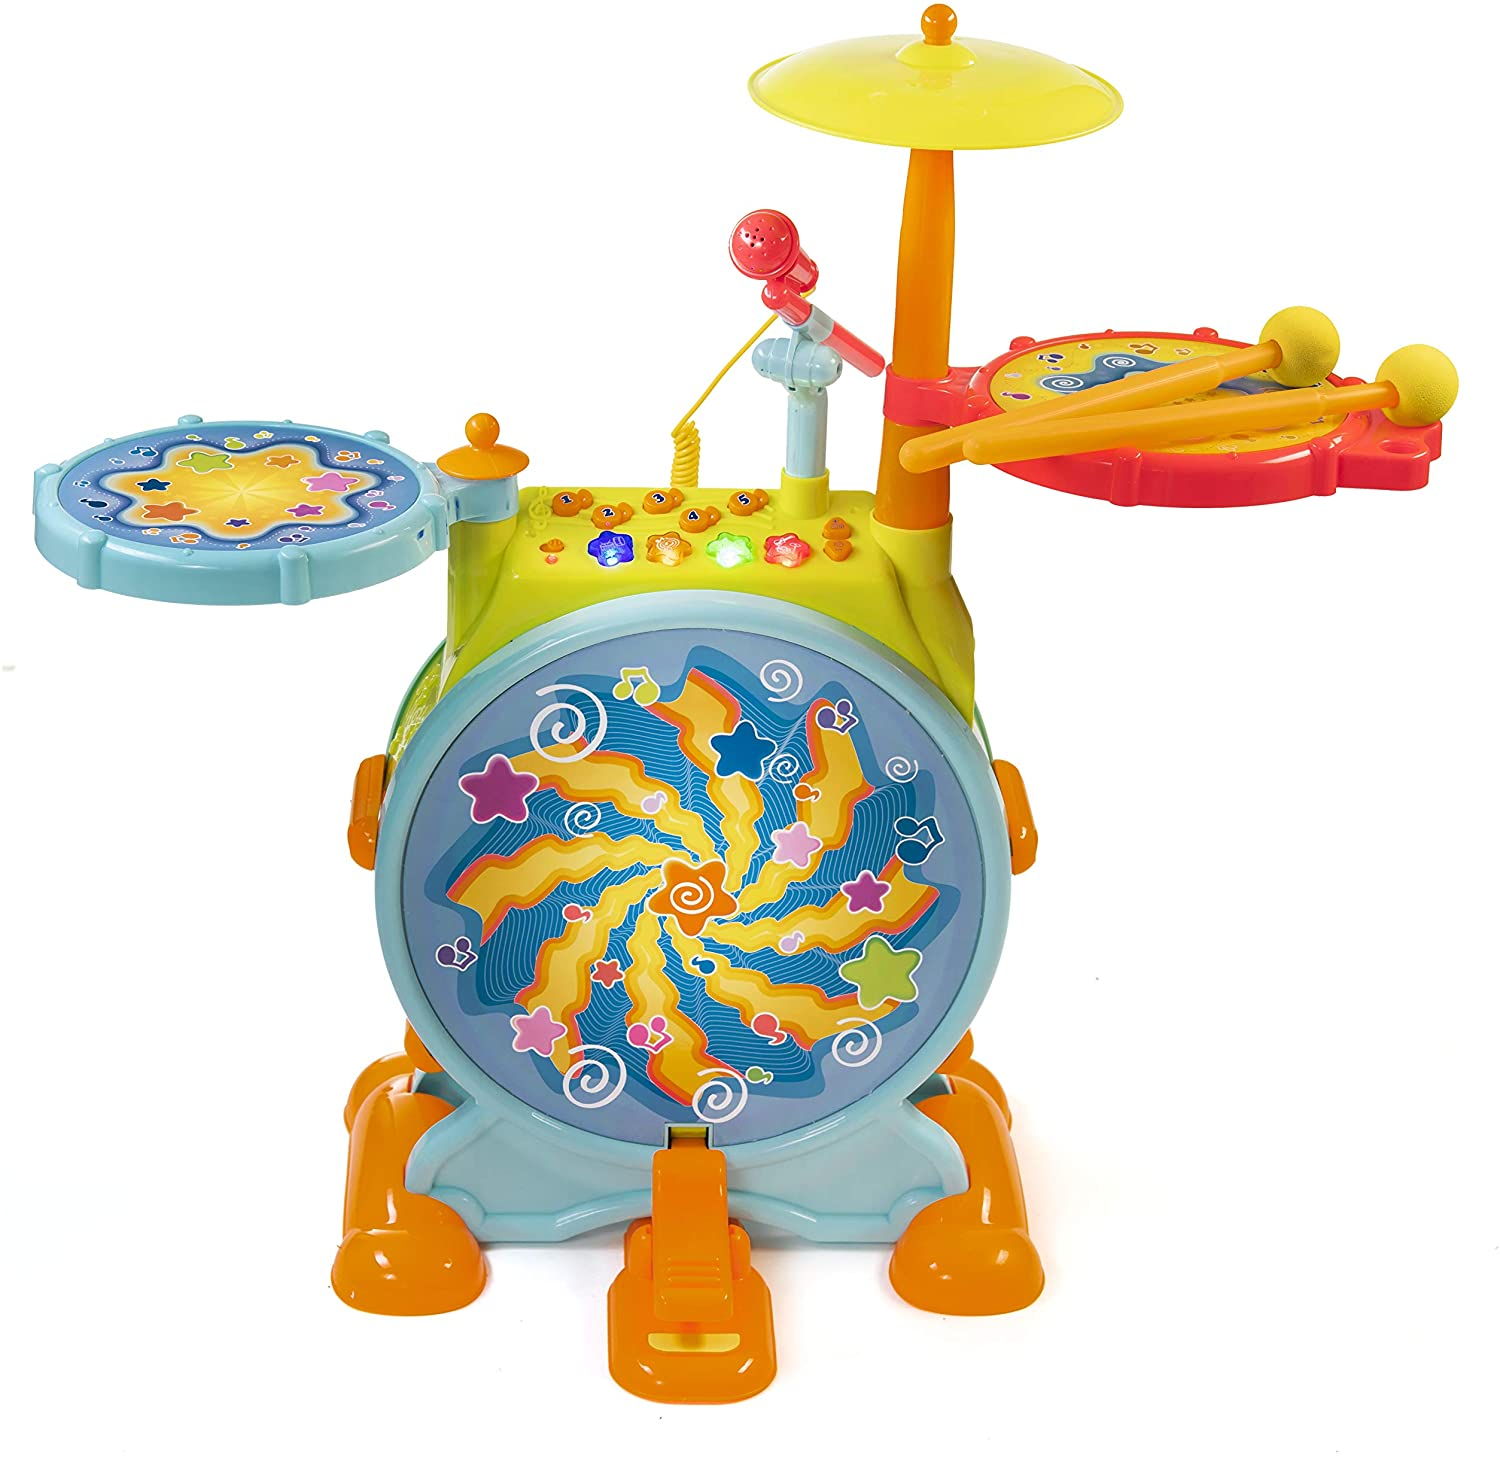 Prextex Kids Electric Toy Best Drum Set for toddlers